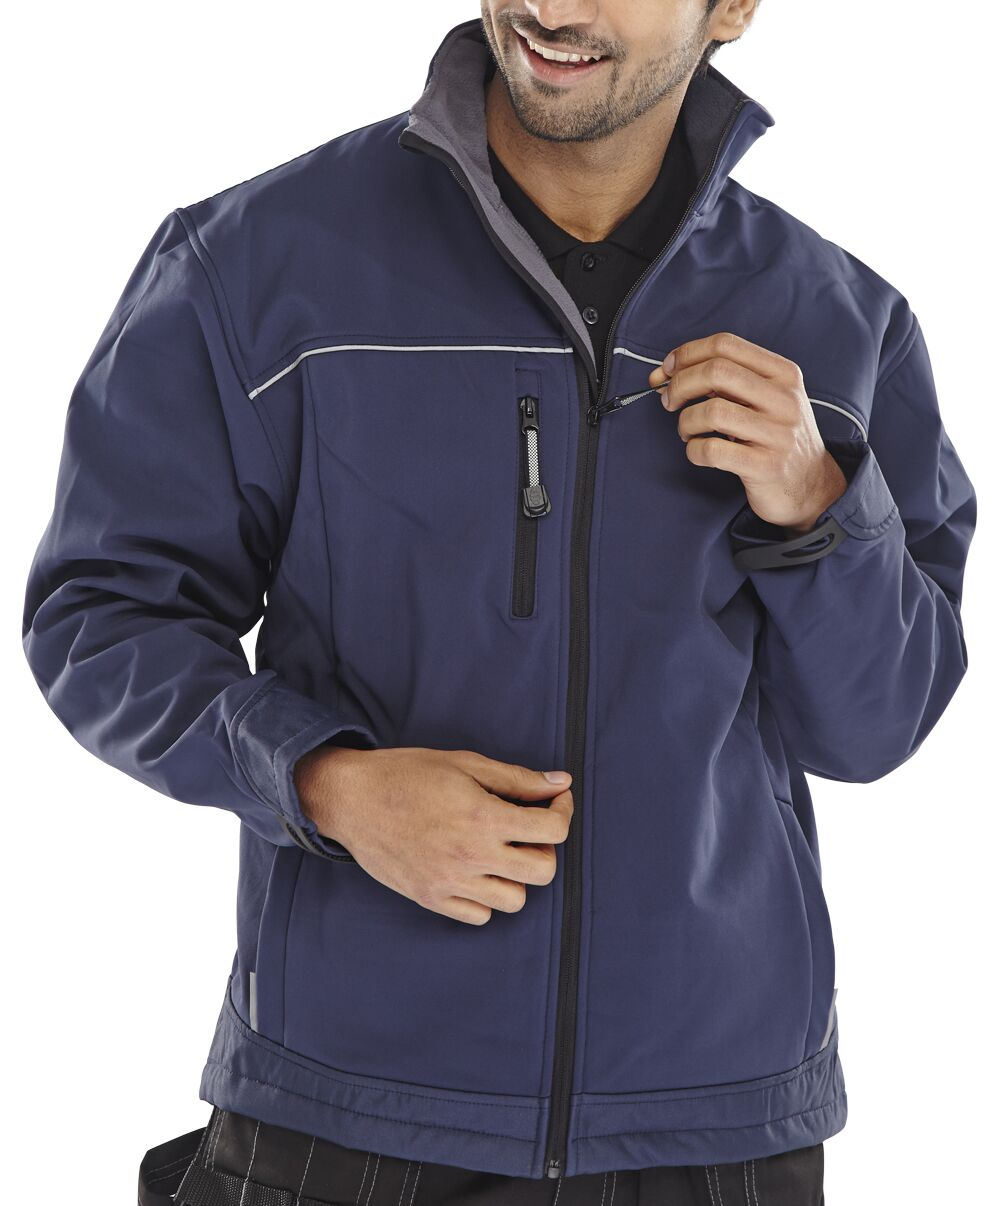 Soft Shell Click Workwear Soft Shell Jacket Water Resistant Windproof Large Navy Ref SSJNL *Approx 3 Day Leadtime*